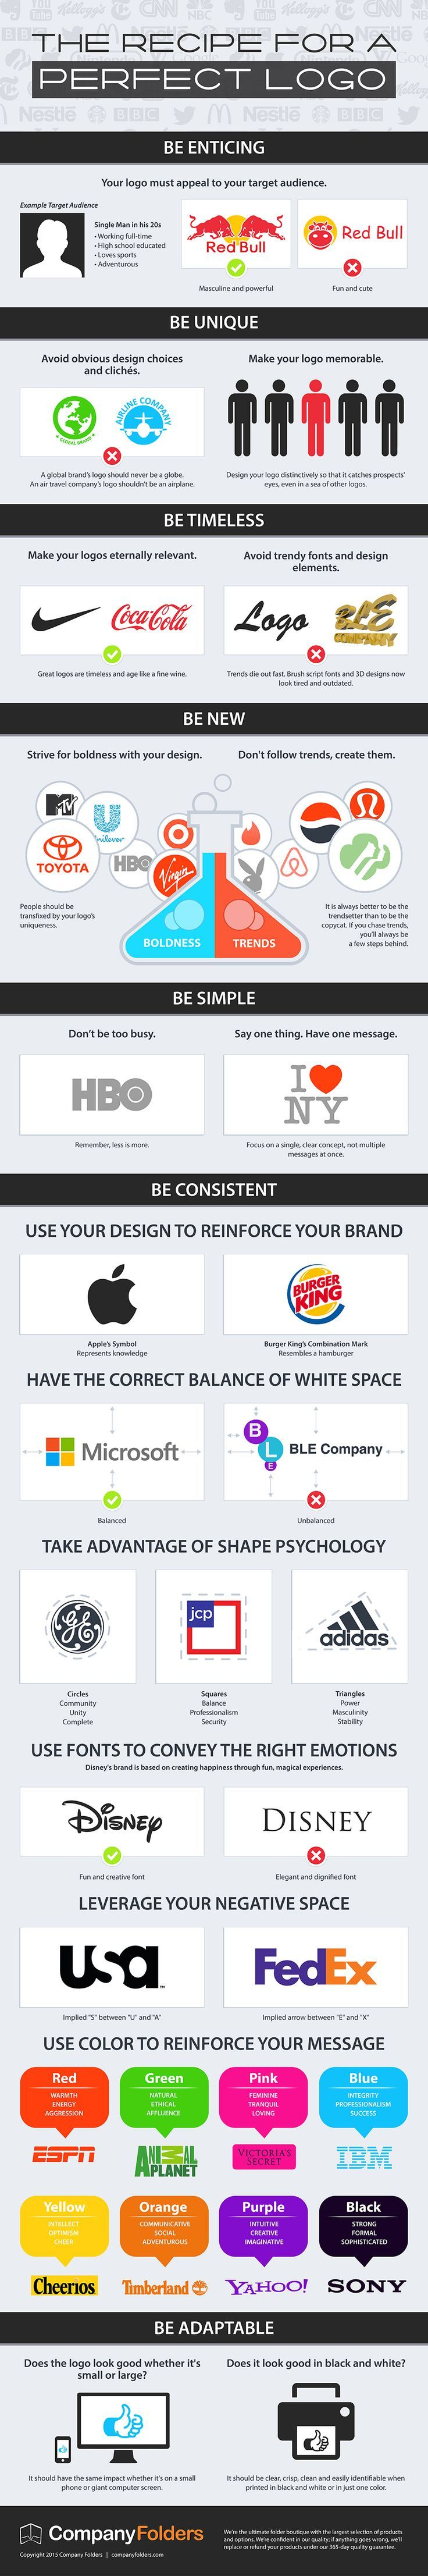 Create the perfect logo